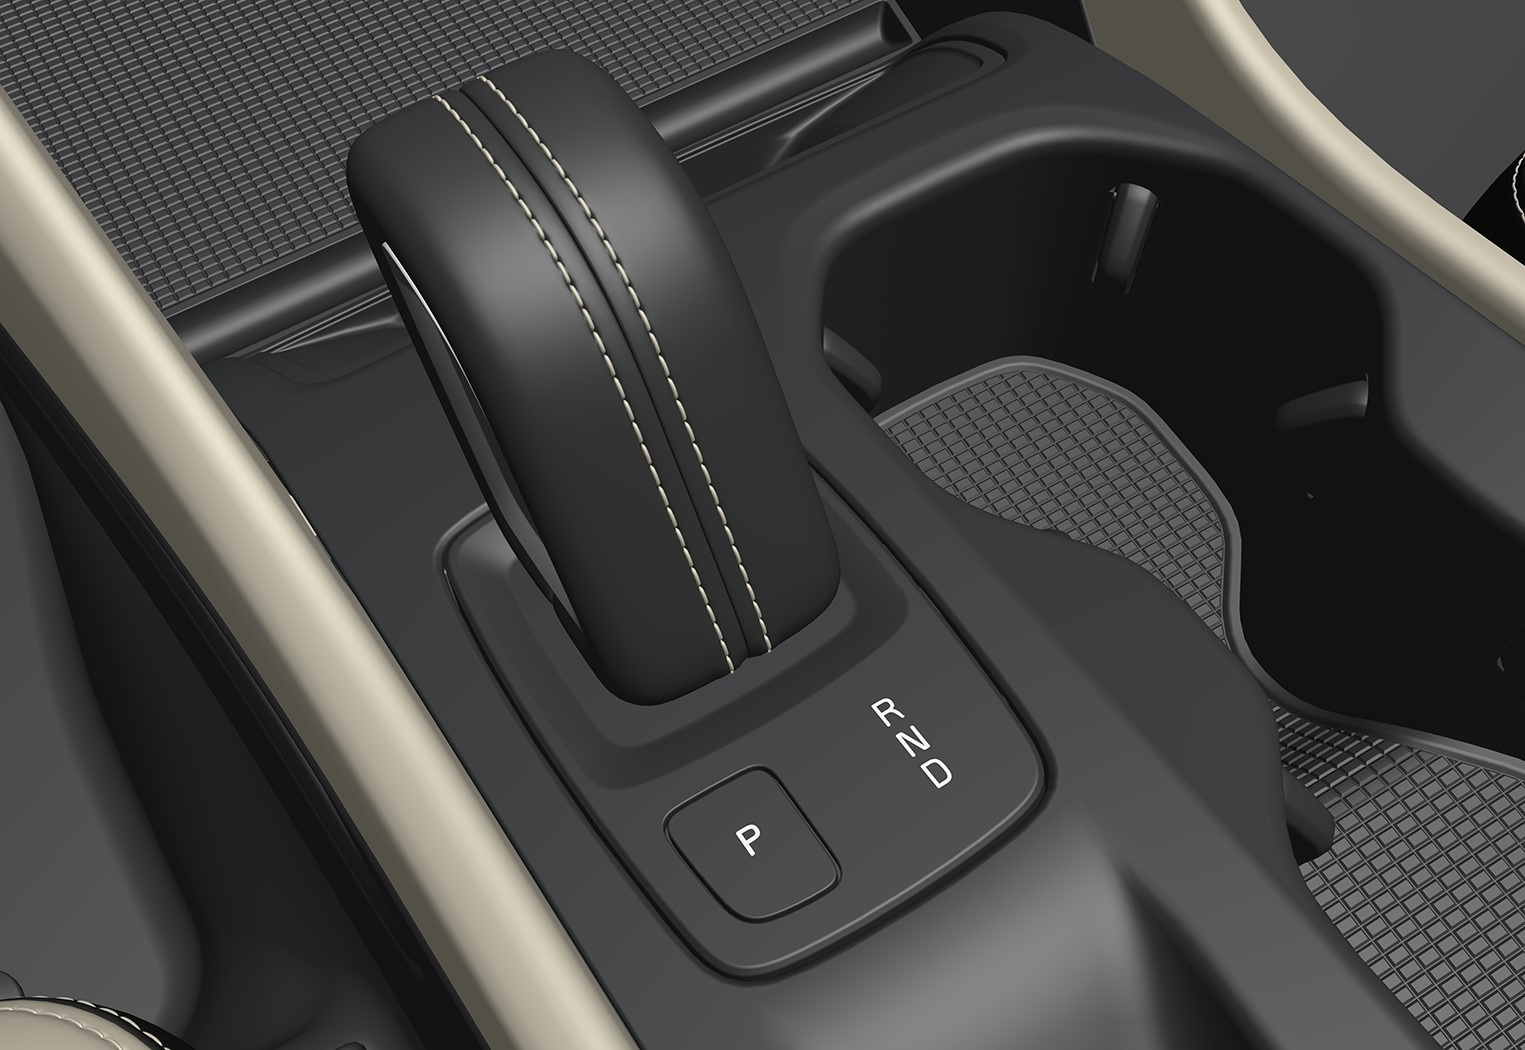 P6-1746-XC40-Automatic gearshifter